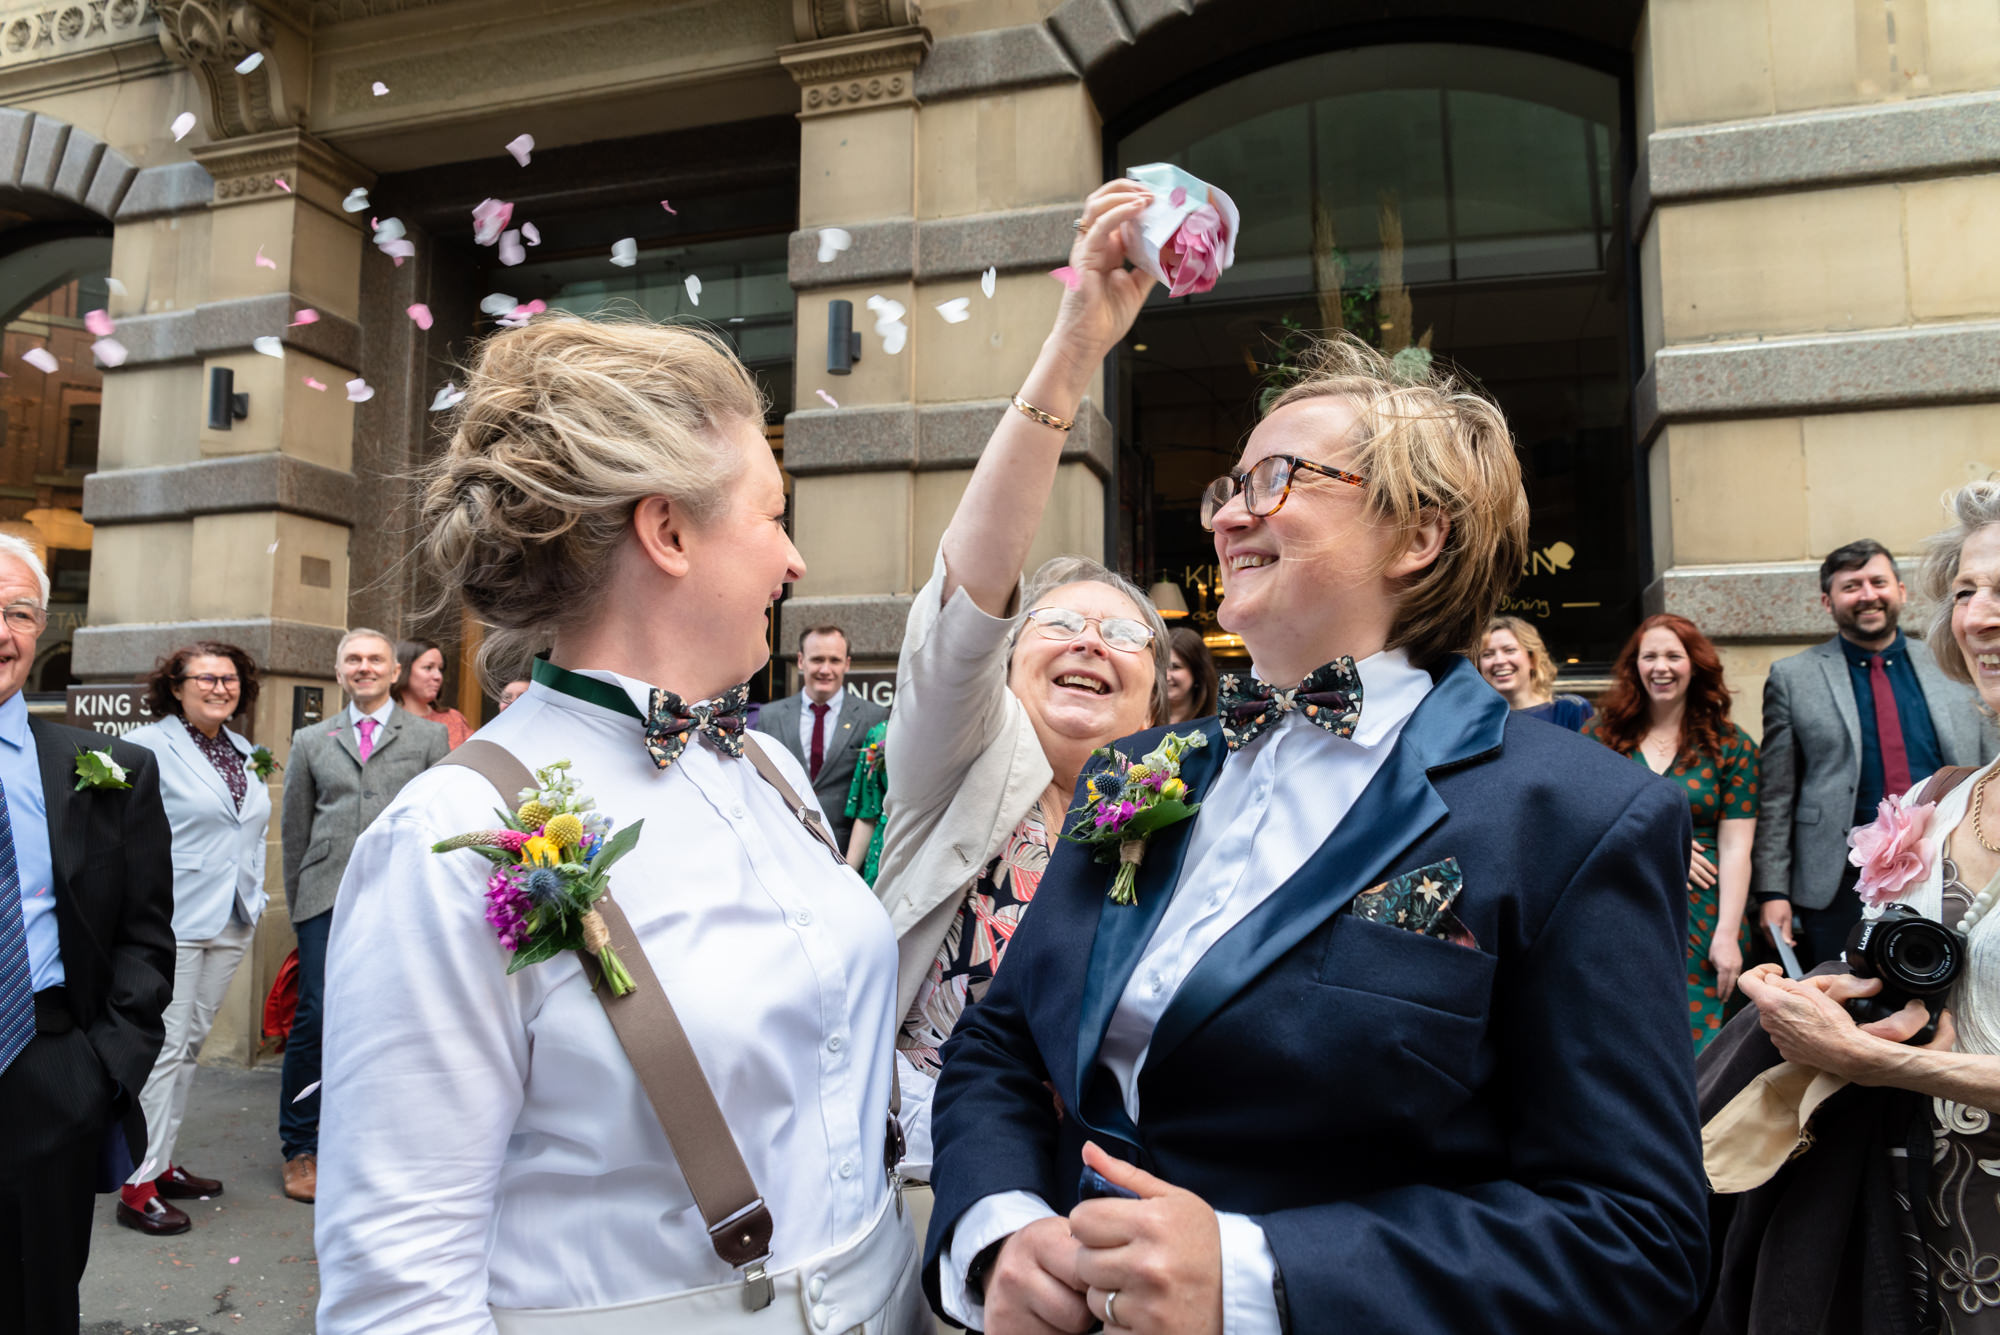 Mother throwing extra confetti outside King Street Townhouse